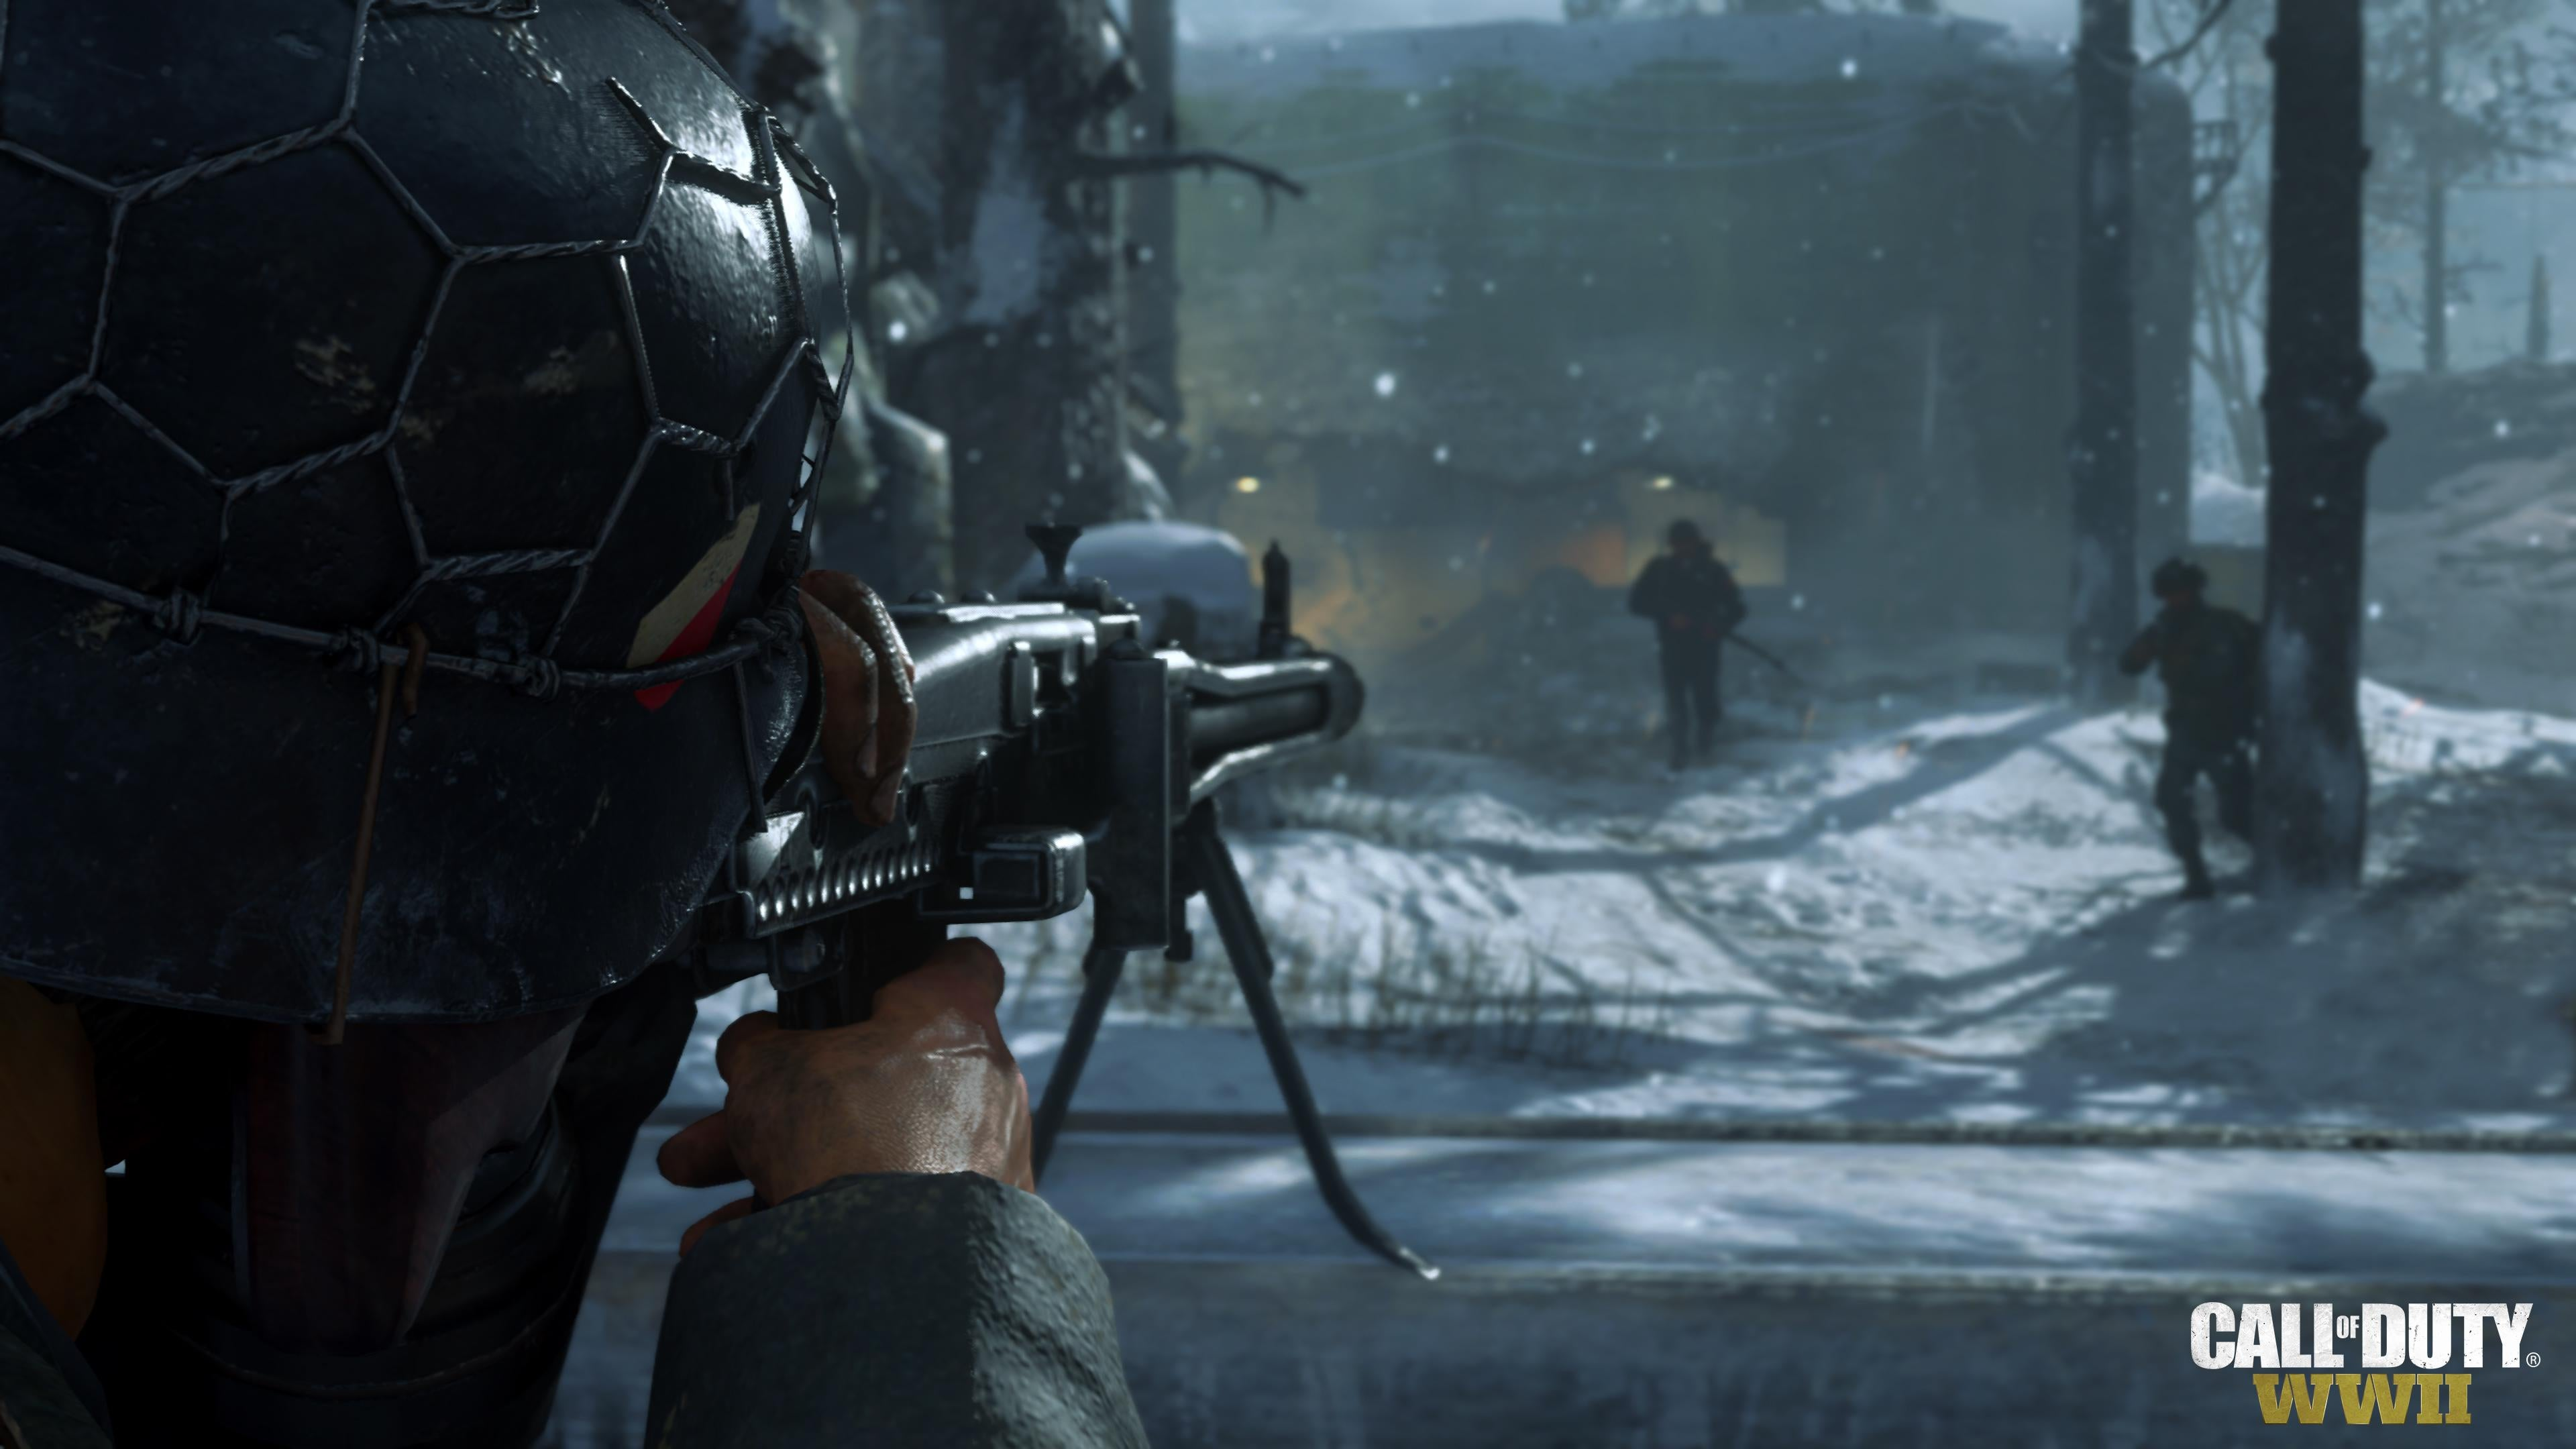 Call of duty ww2 review trusted reviews surprisingly the straight deathmatch and domination modes dont necessarily showcase world war iis multiplayer at its best the classic feel of cod2 to gumiabroncs Gallery